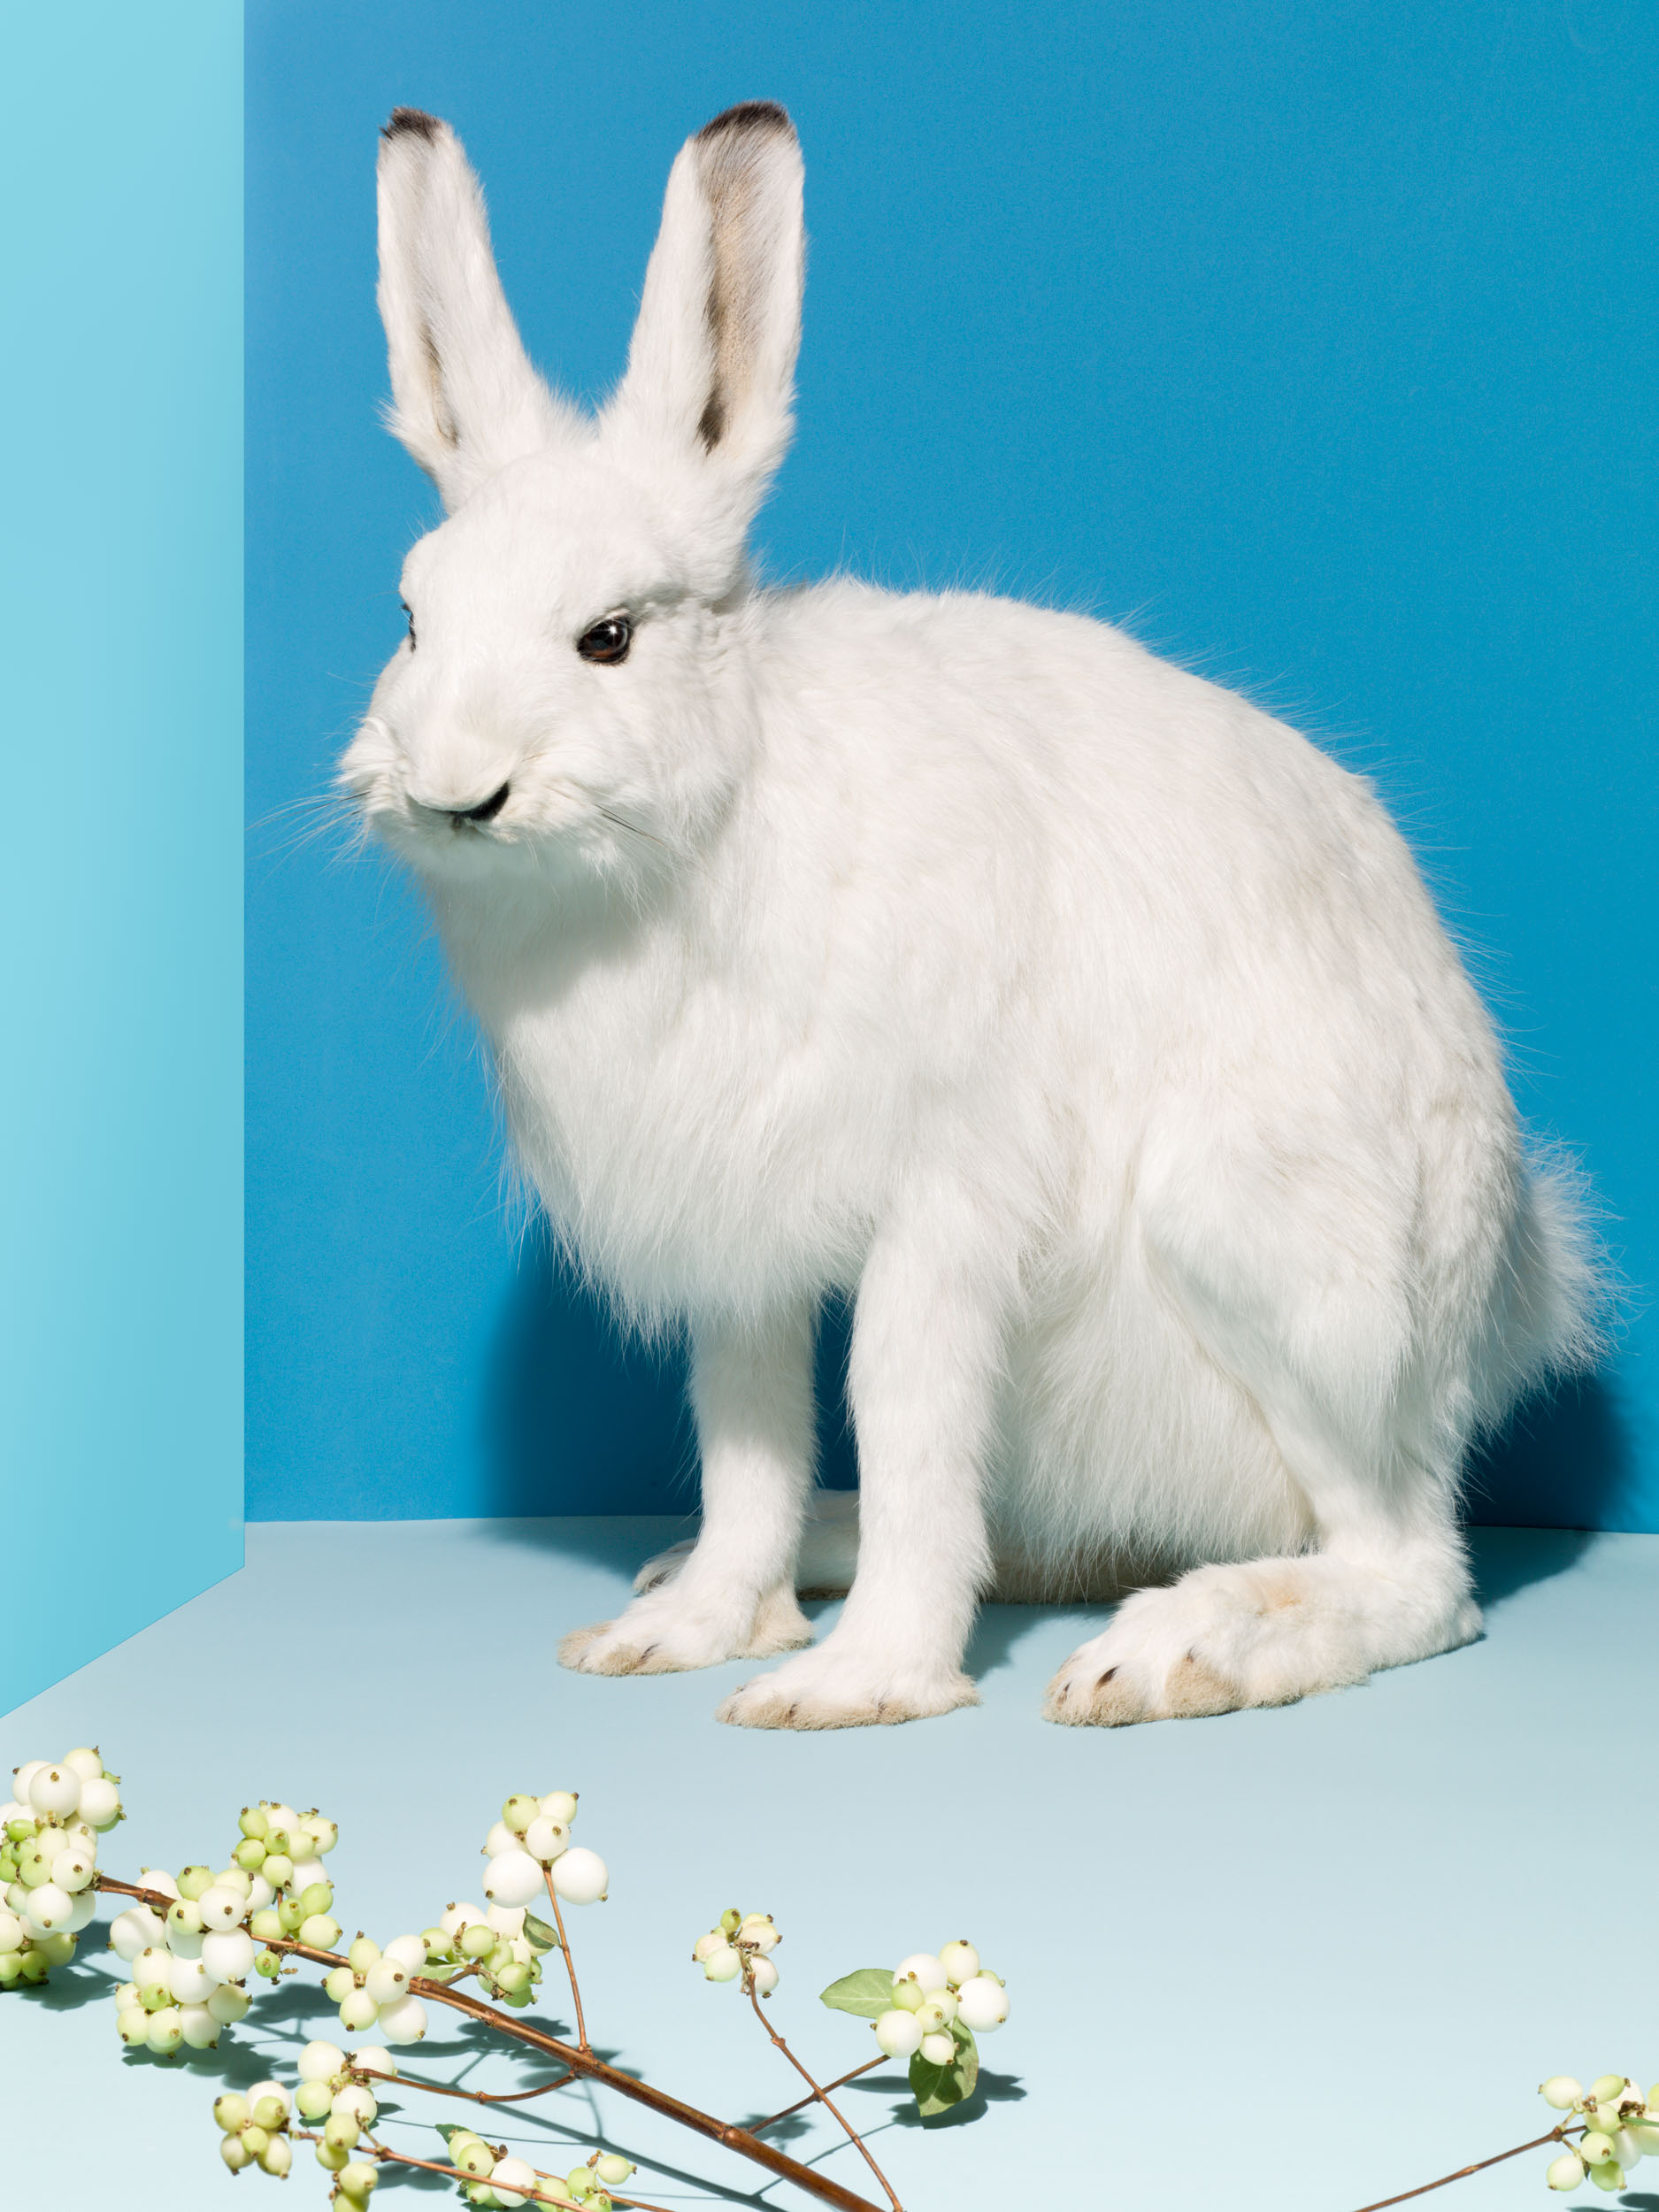 19_Taxidermy_Rabbit_015_Focus